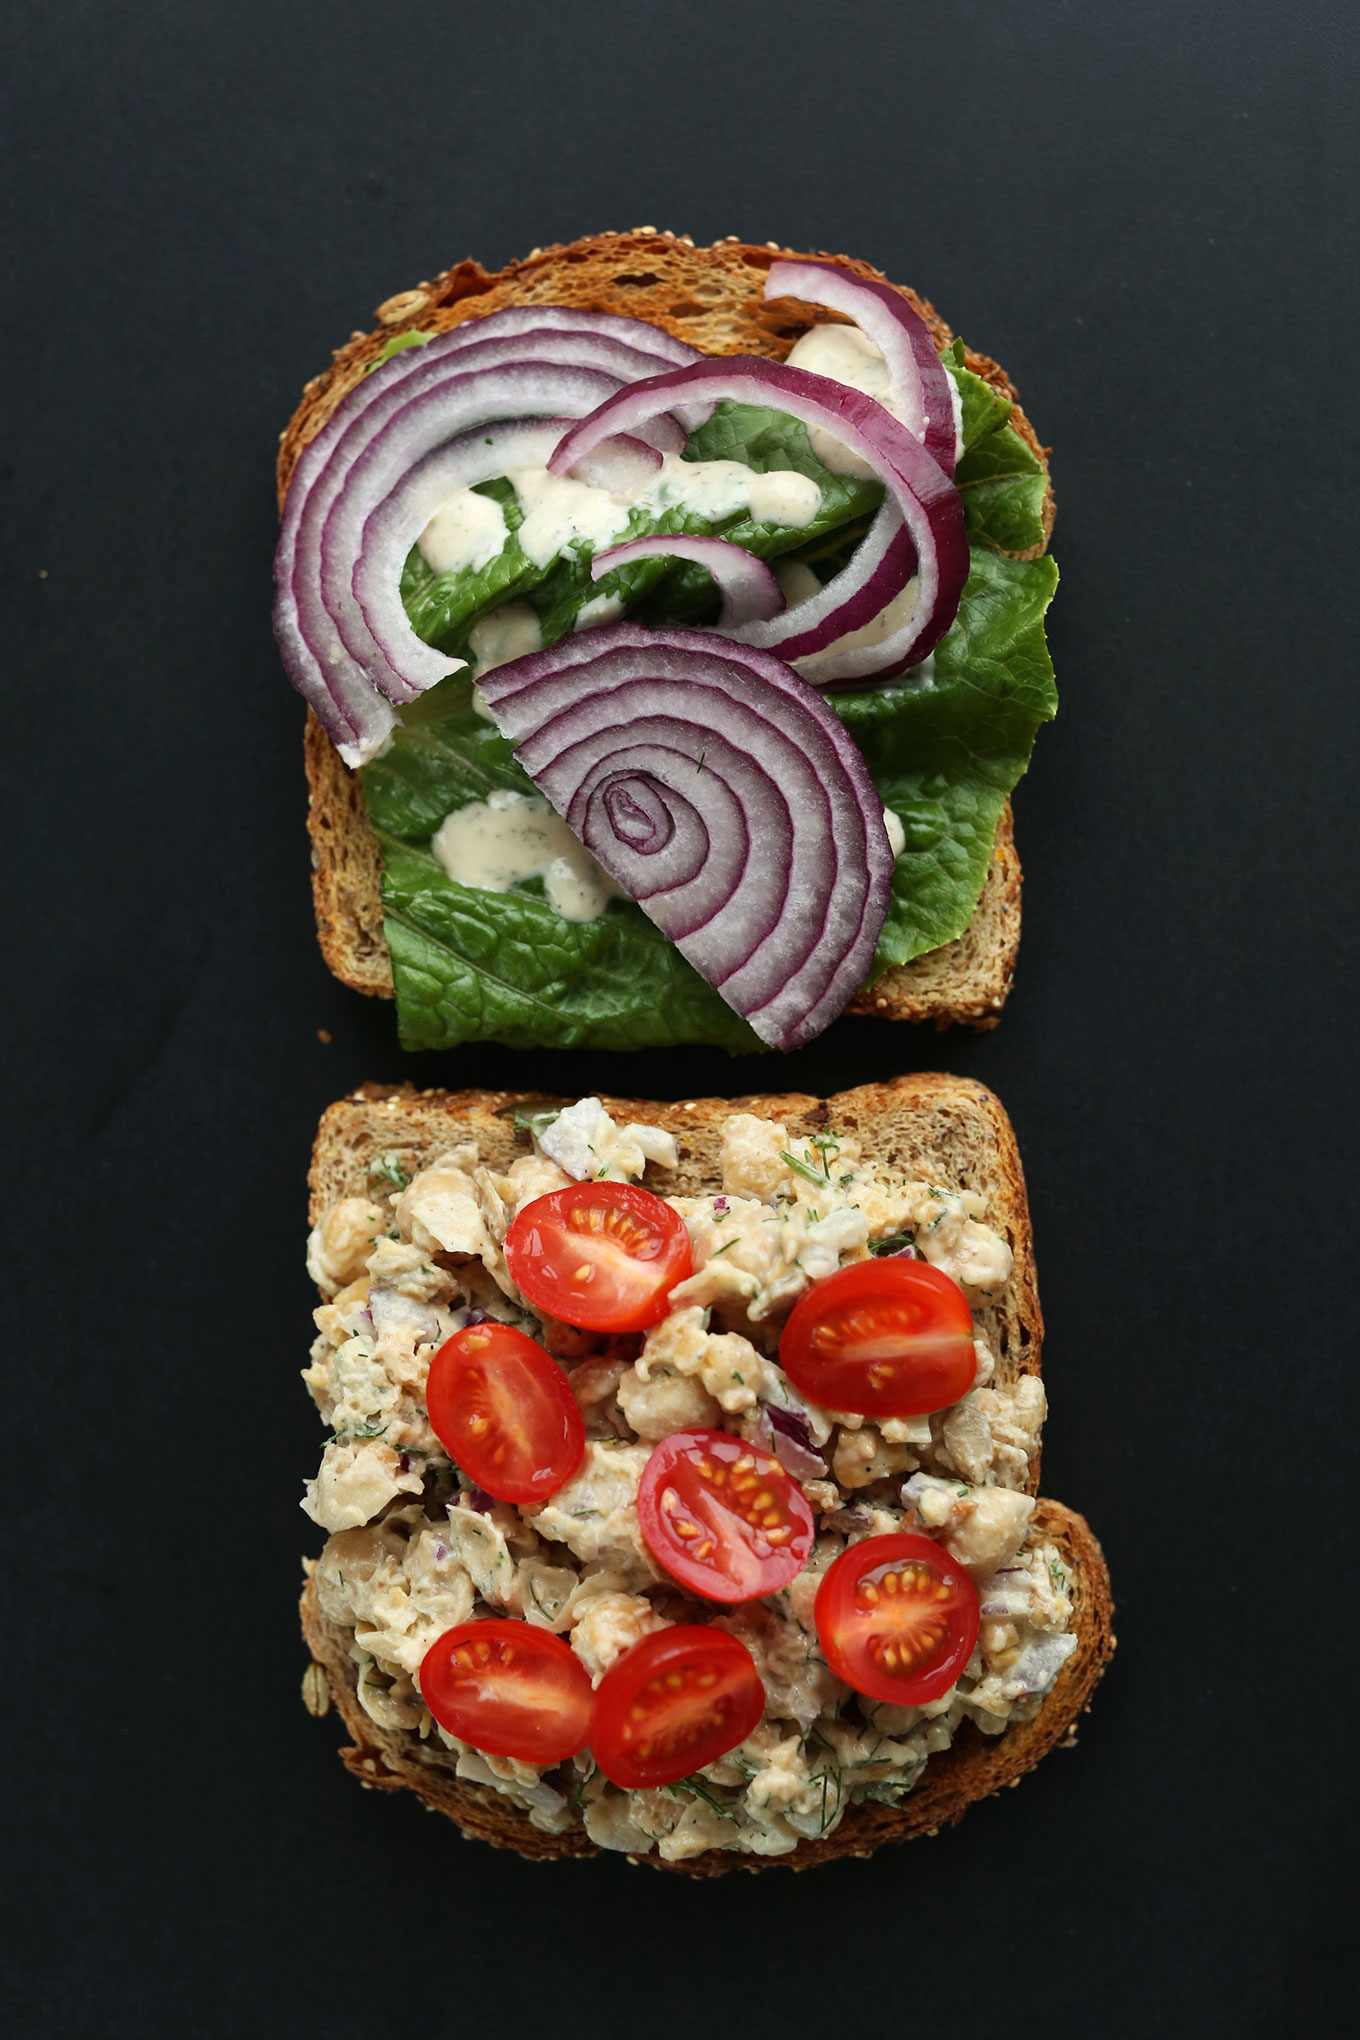 Slices of bread with lettuce, red onion, tomatoes, and Chickpea Sunflower Salad